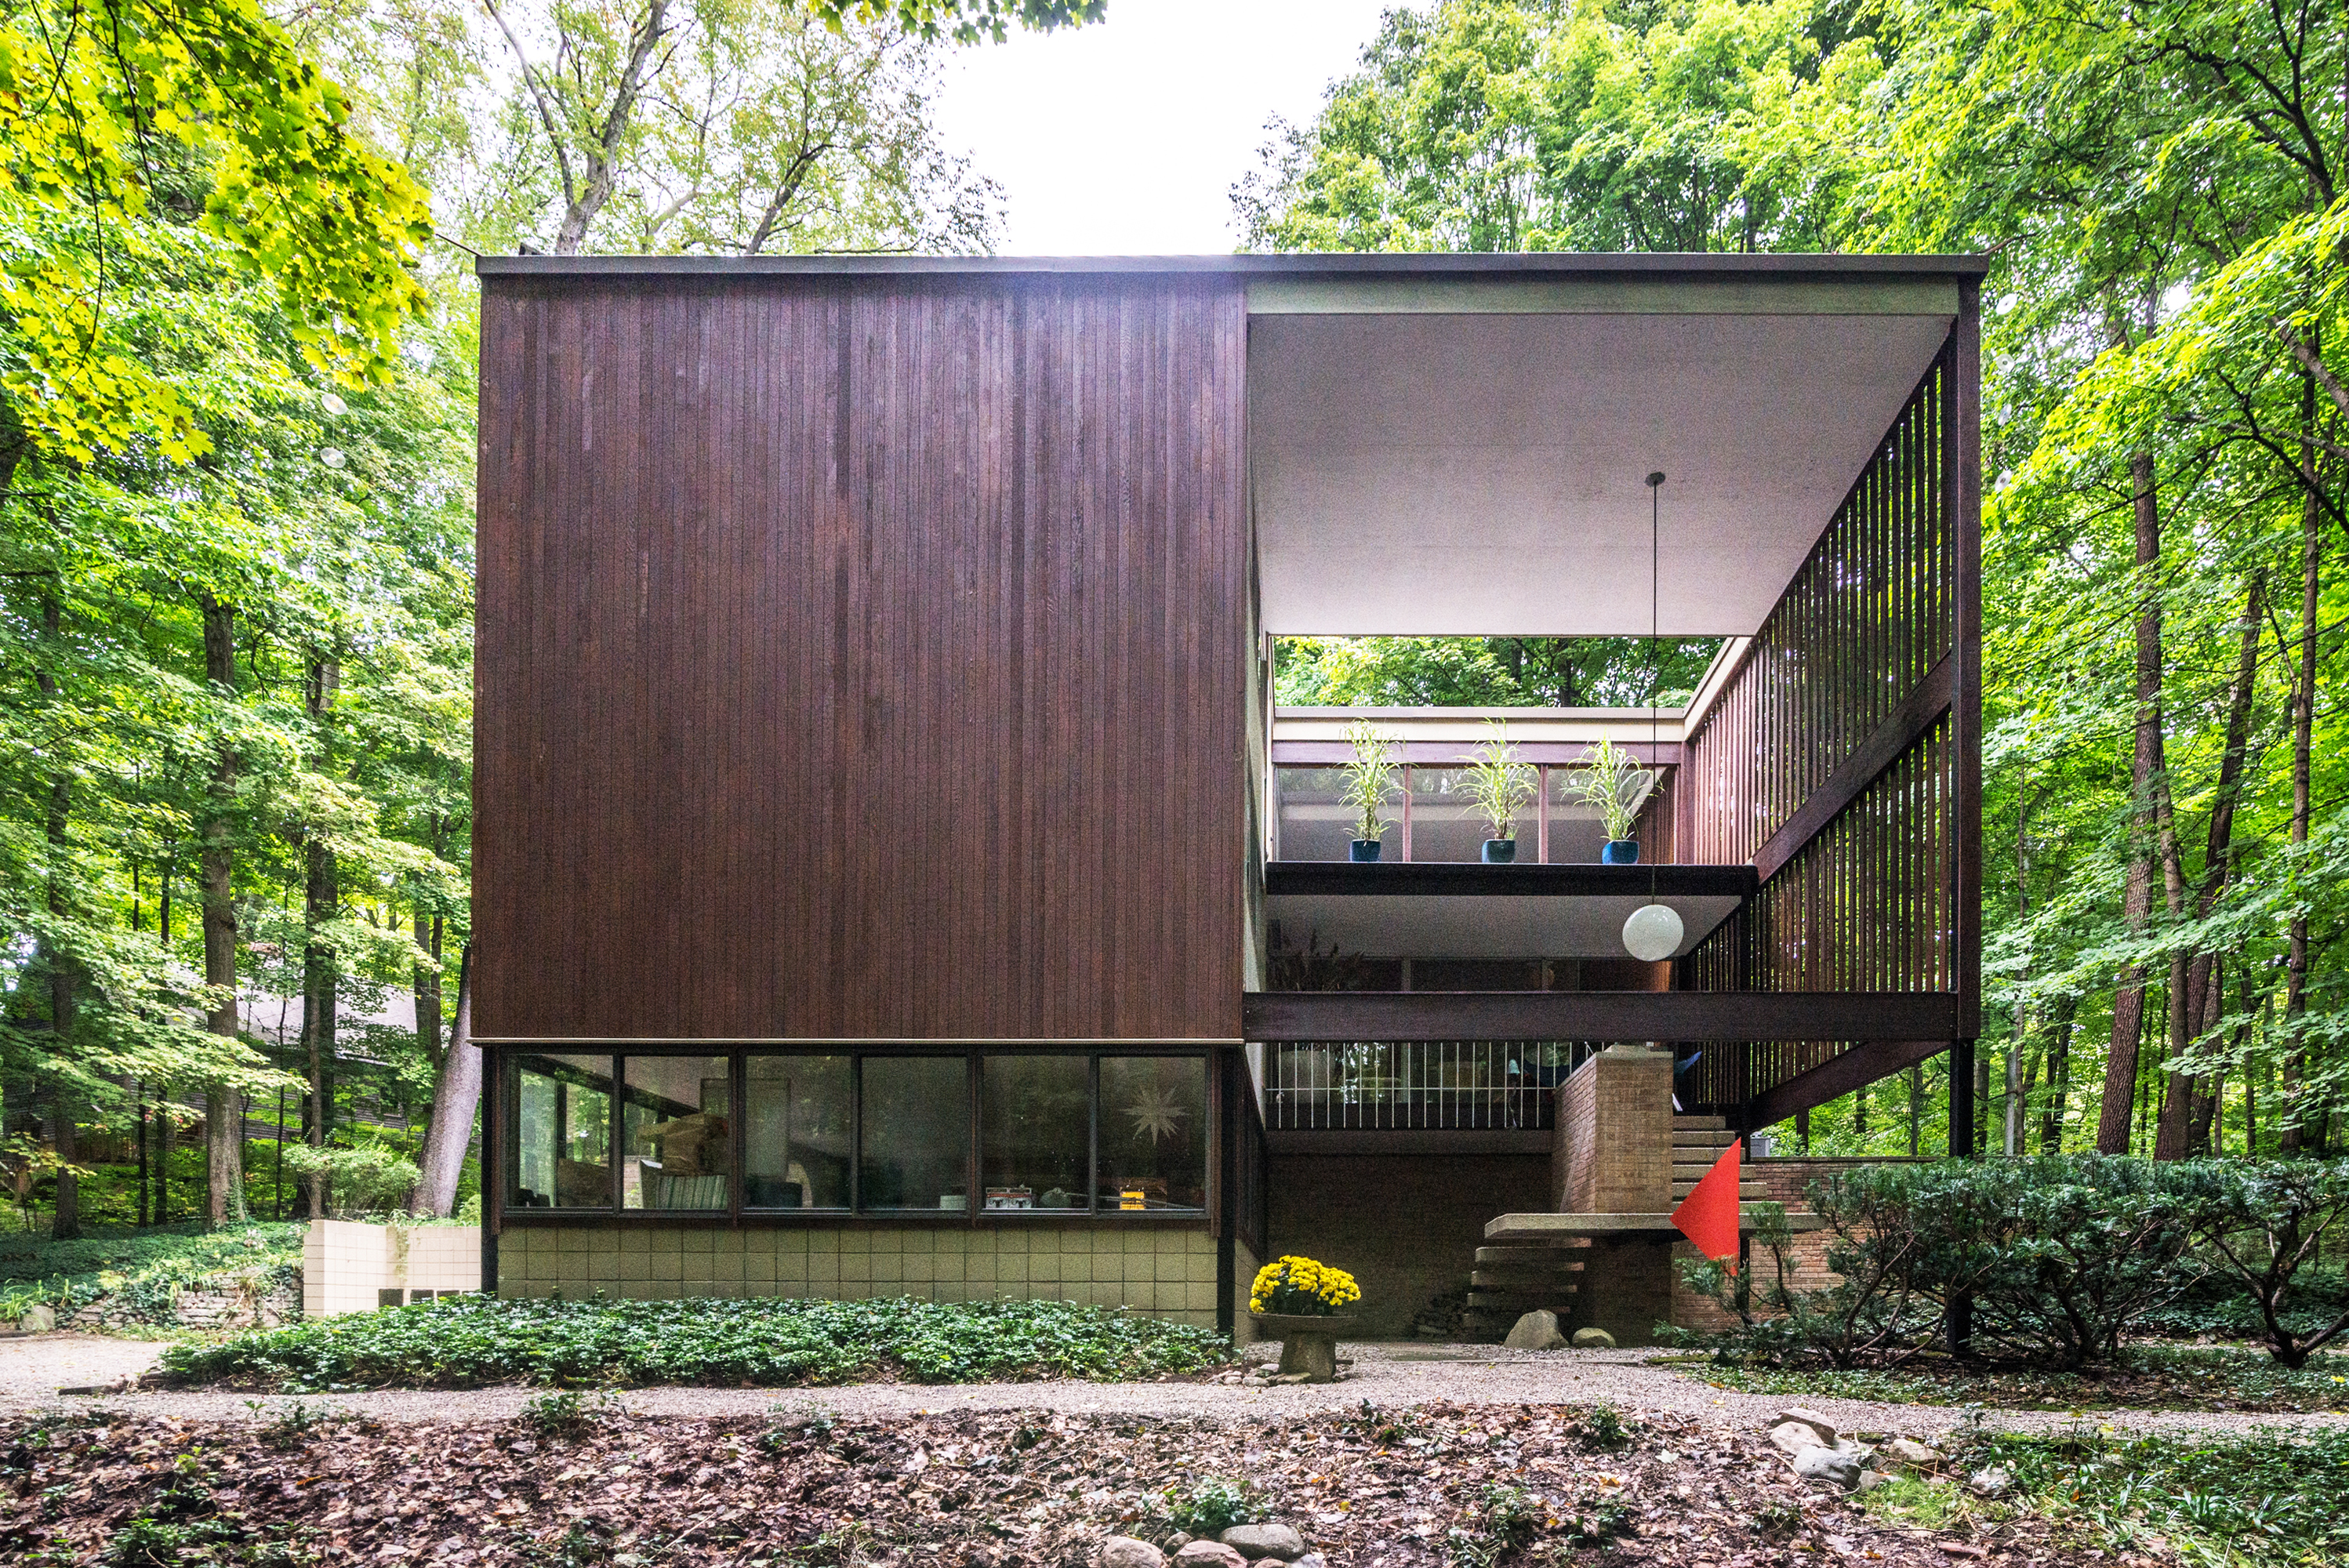 A geometric home with a solid side with wood siding and an 'open' side with a lofted living space. The home is surrounded by woods.